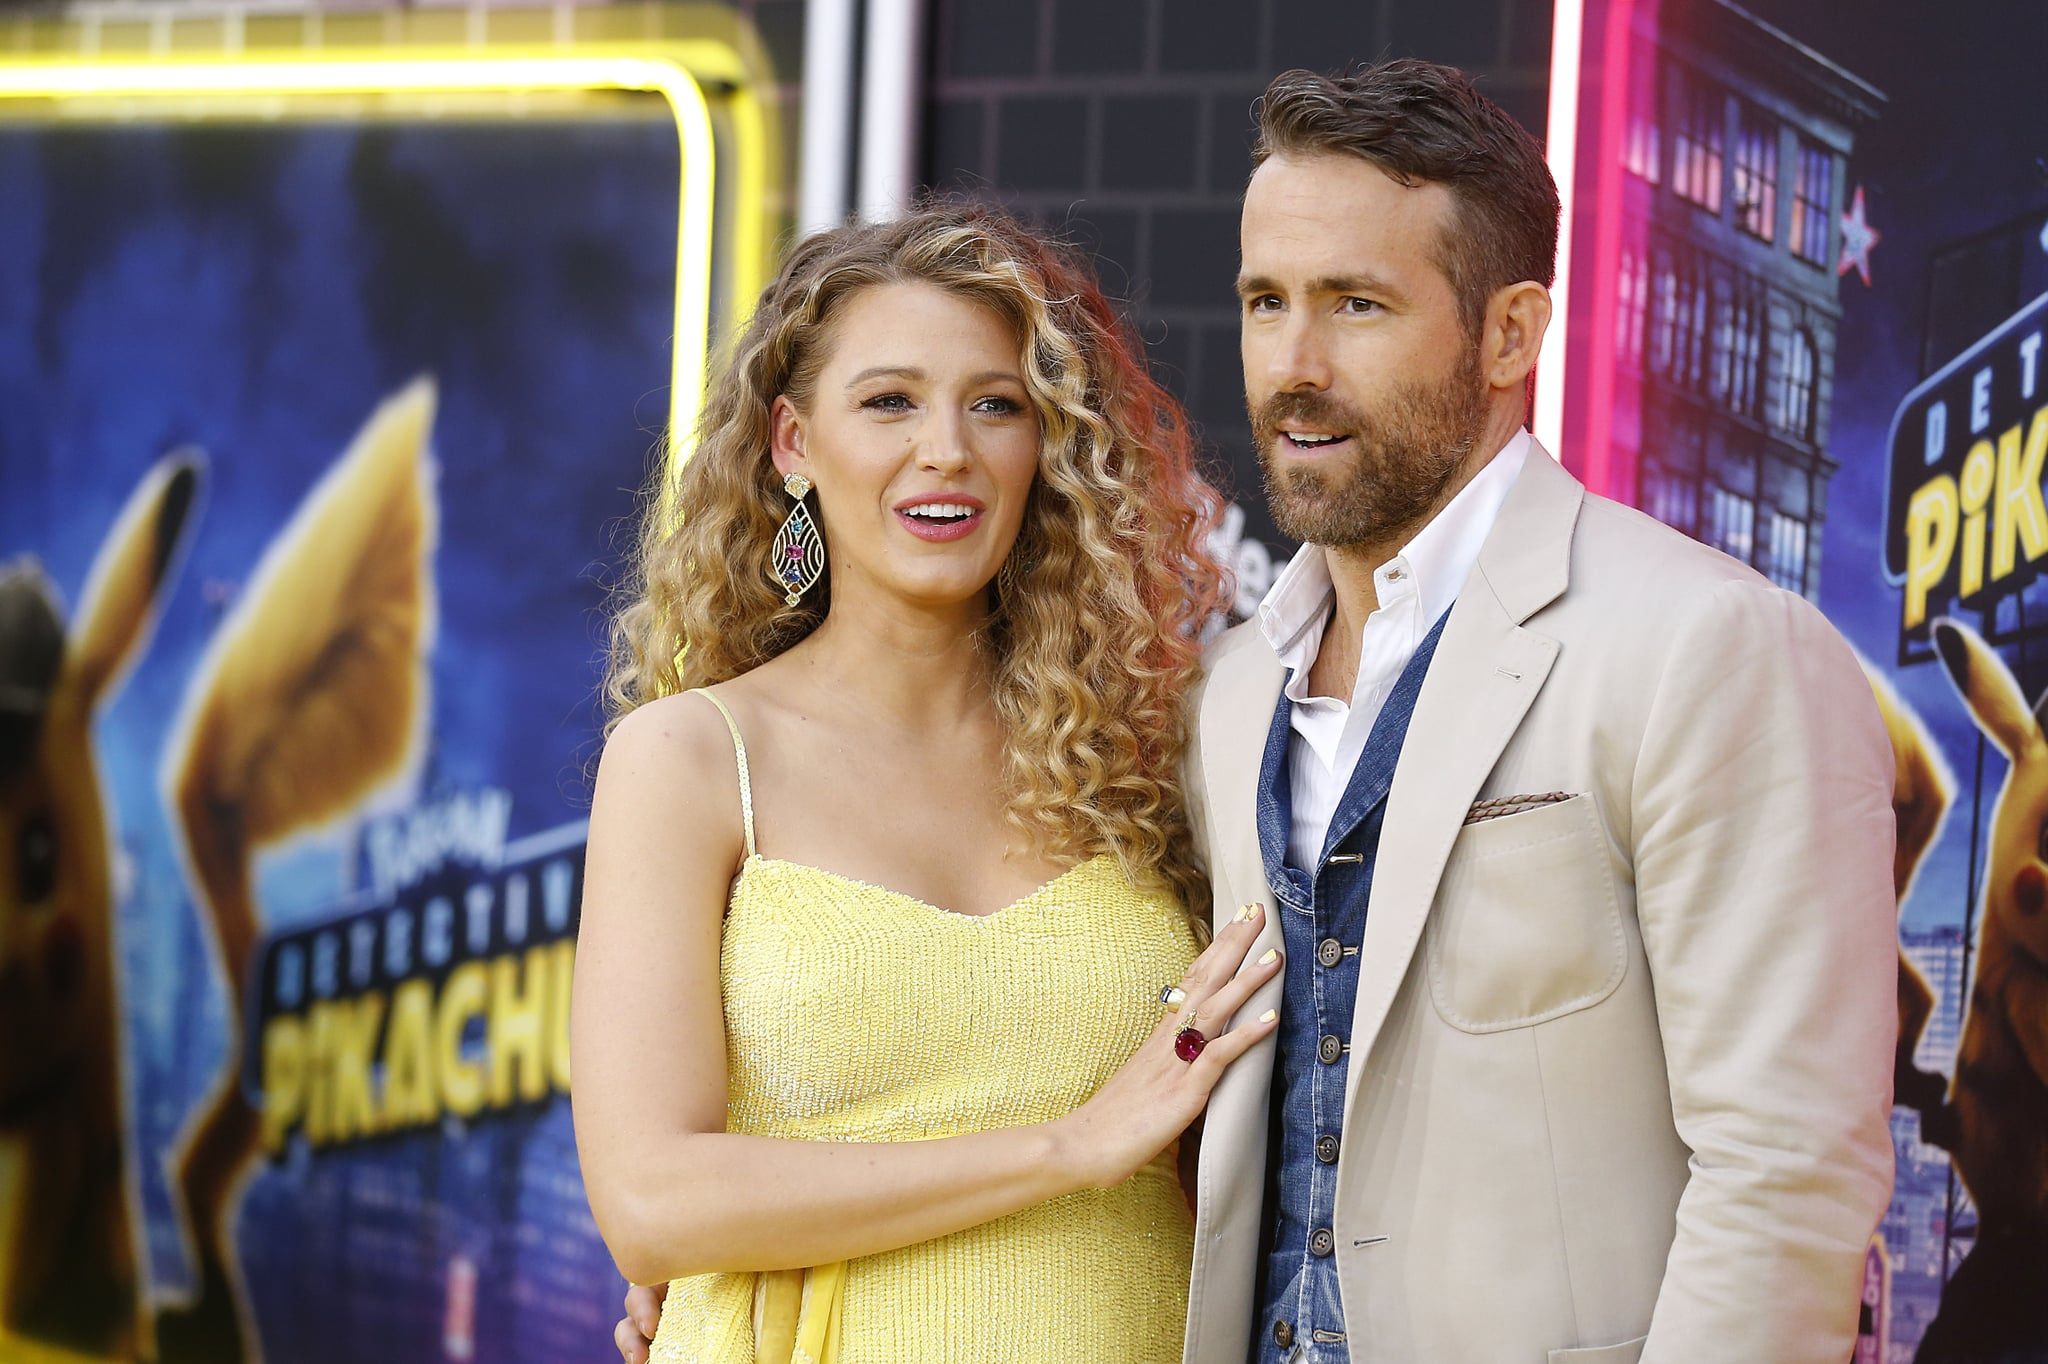 NEW YORK, NEW YORK - MAY 02:   Ryan Reynolds and Blake Lively attend